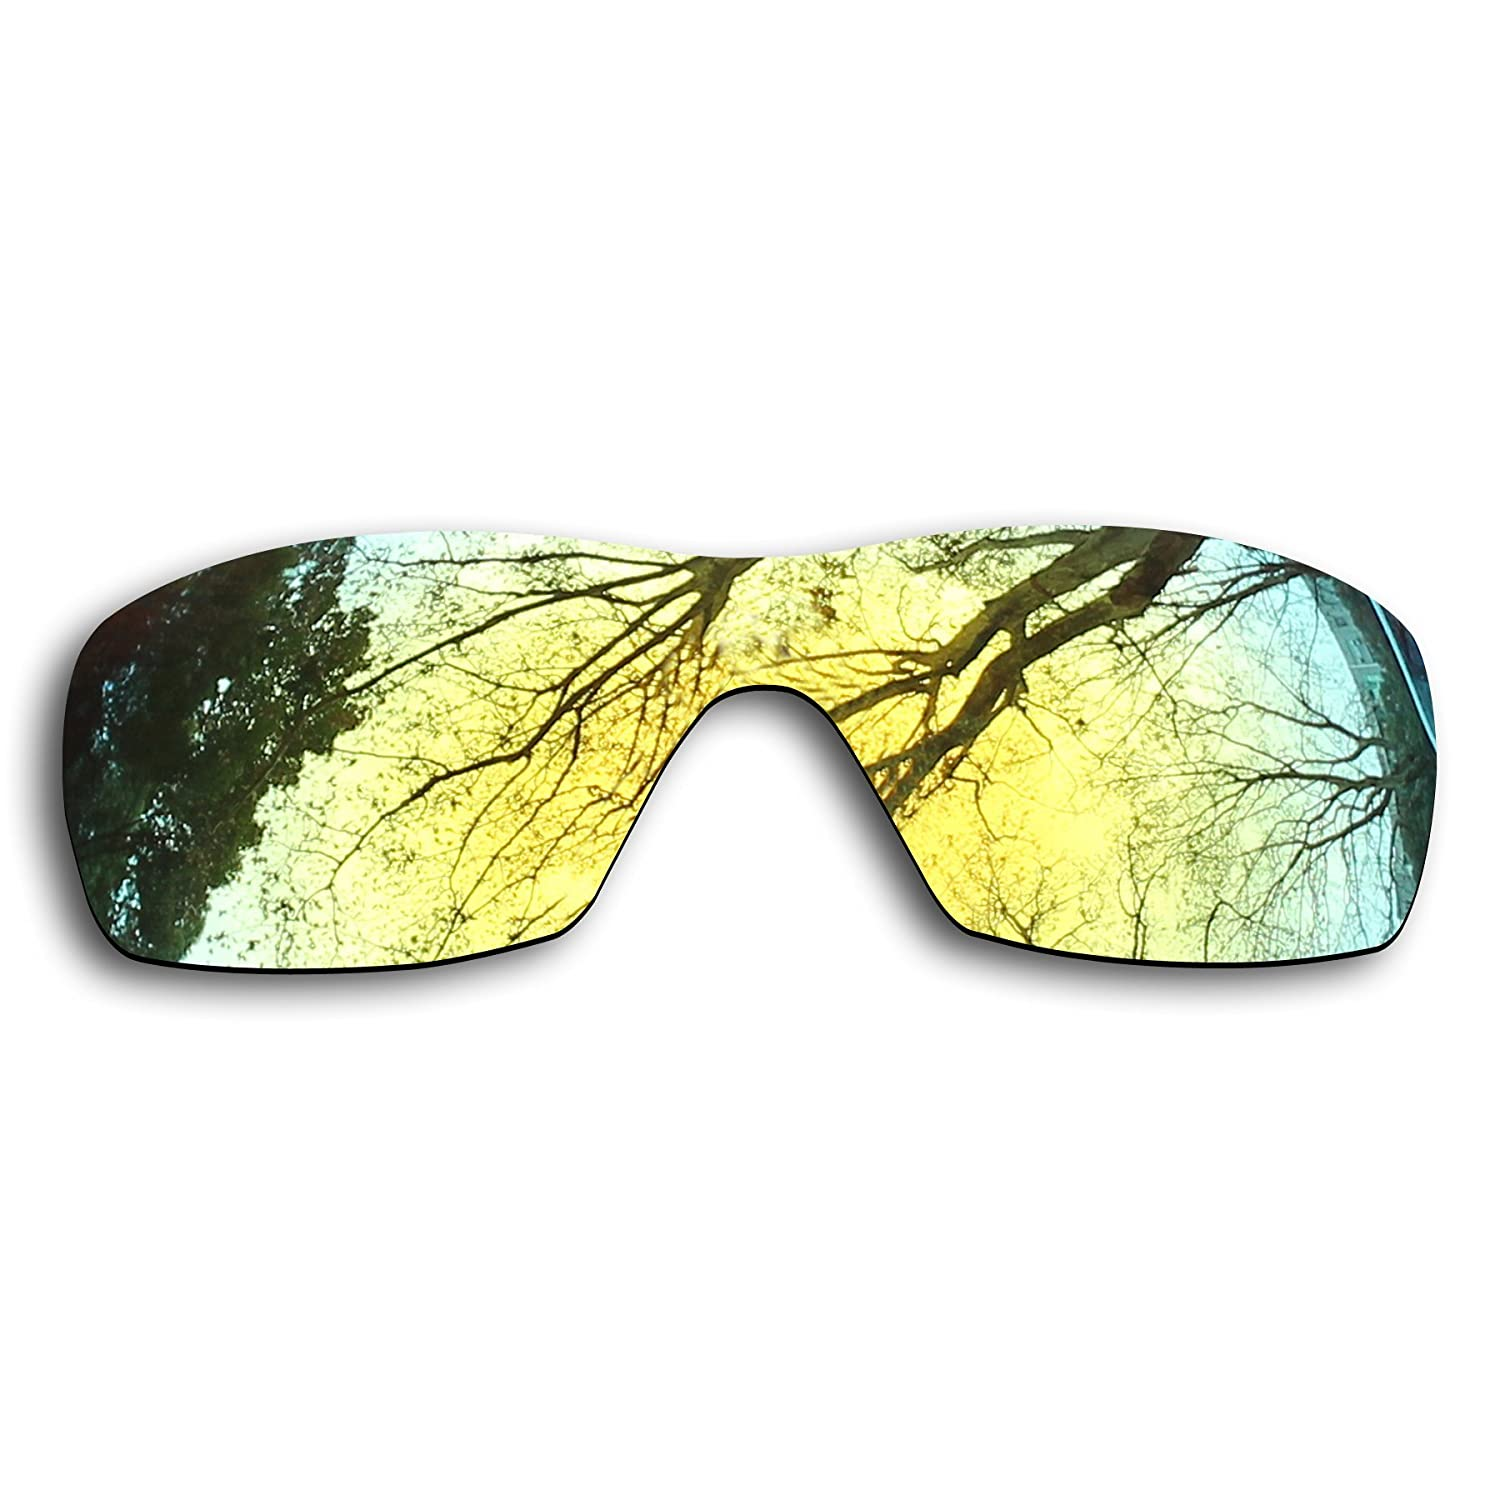 4d767f0b82 Amazon.com  ToughAsNails Polarized Lens Replacement for Oakley Dart  Sunglass - More Options  Clothing